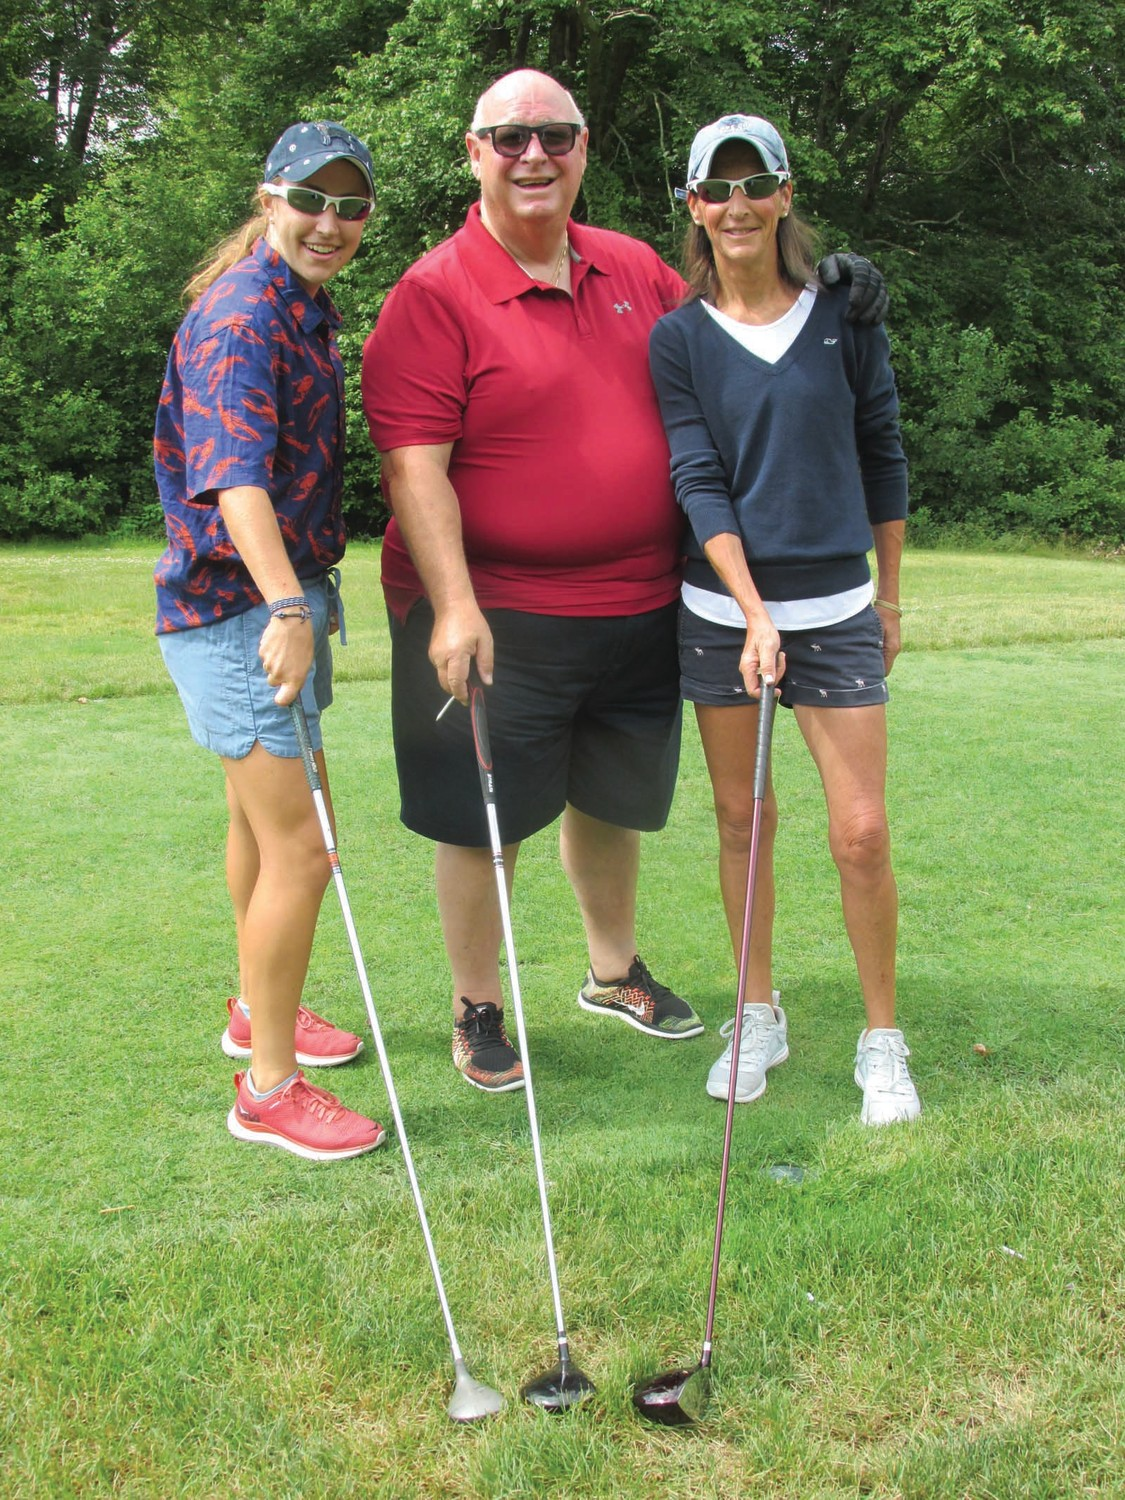 GROUP GOWER: Our Lady of Grace Pastor Rev. Peter J. Gower played in his parishes first ever golf tourney with his sister Marie Gower and Caitlin Marino.